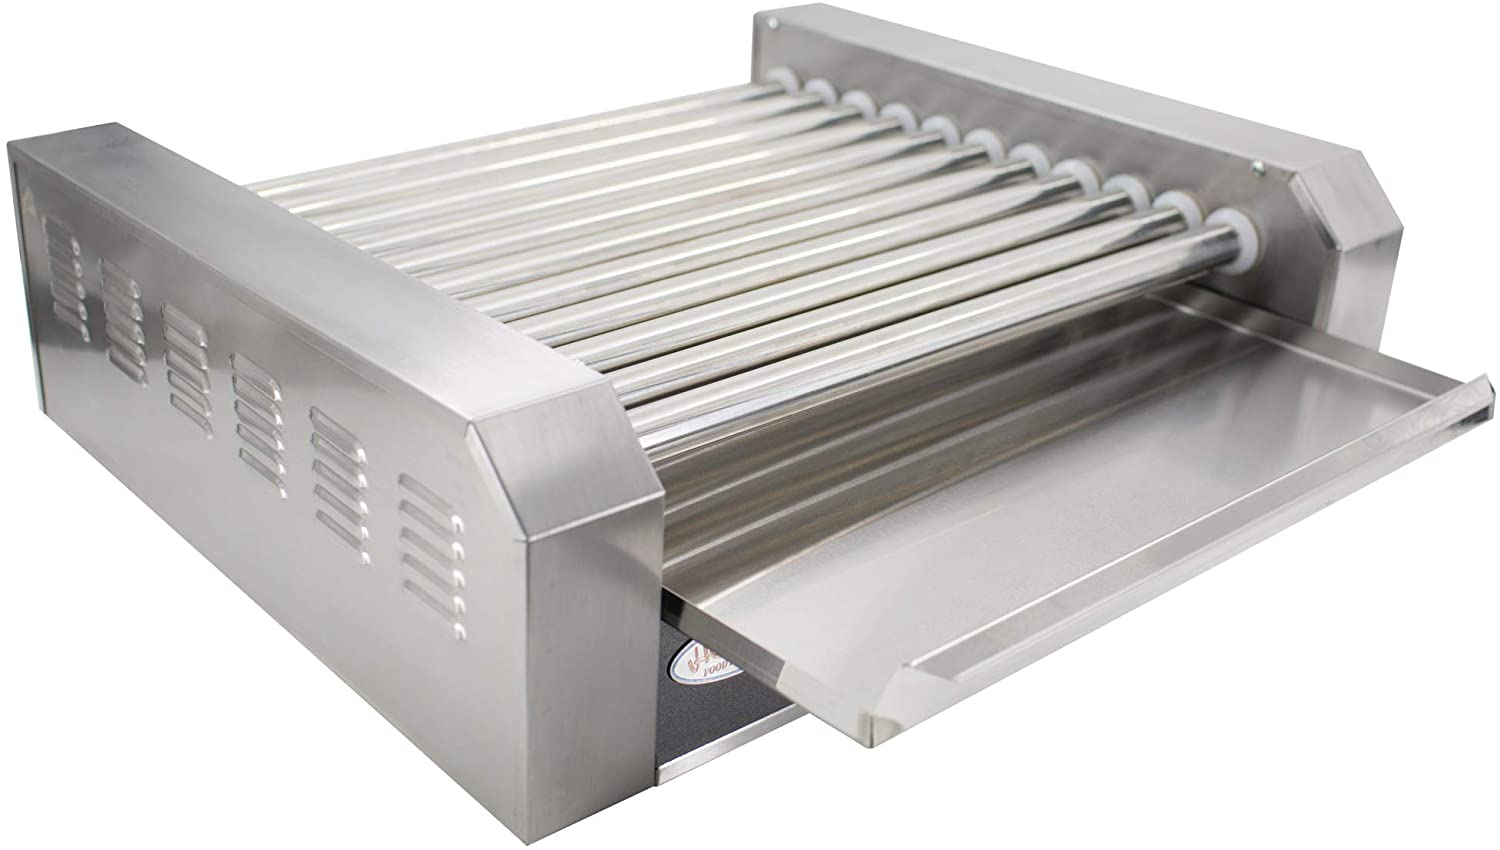 Hakka Commercial Hot Dog Roller Grill with 11 RollersET-R2-11